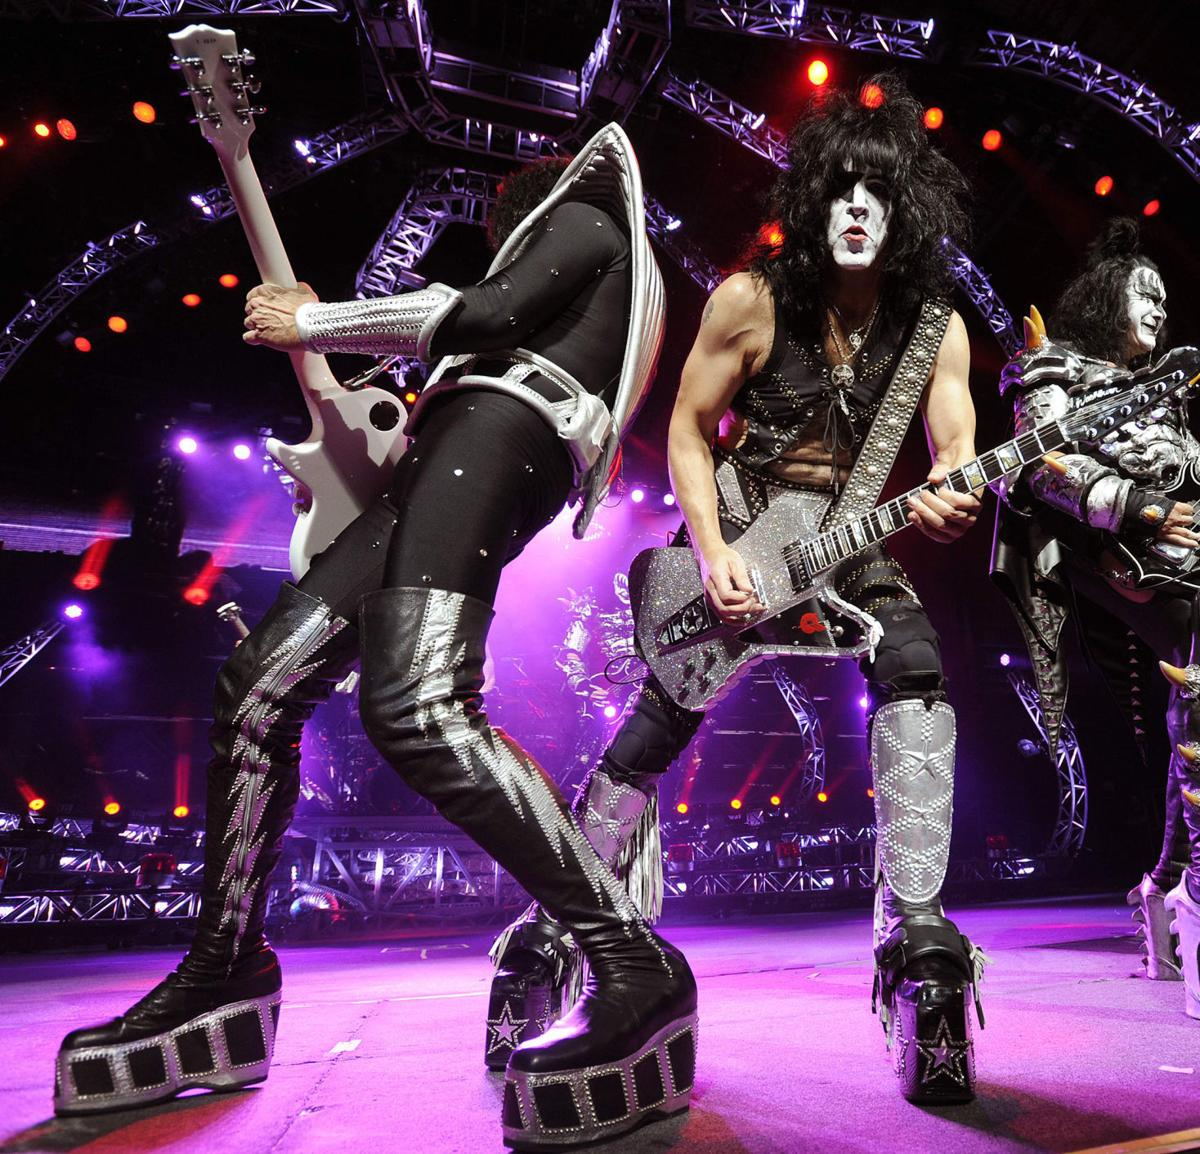 One last KISS: Costumed headbangers say farewell (again) with 'End of the Road' tour